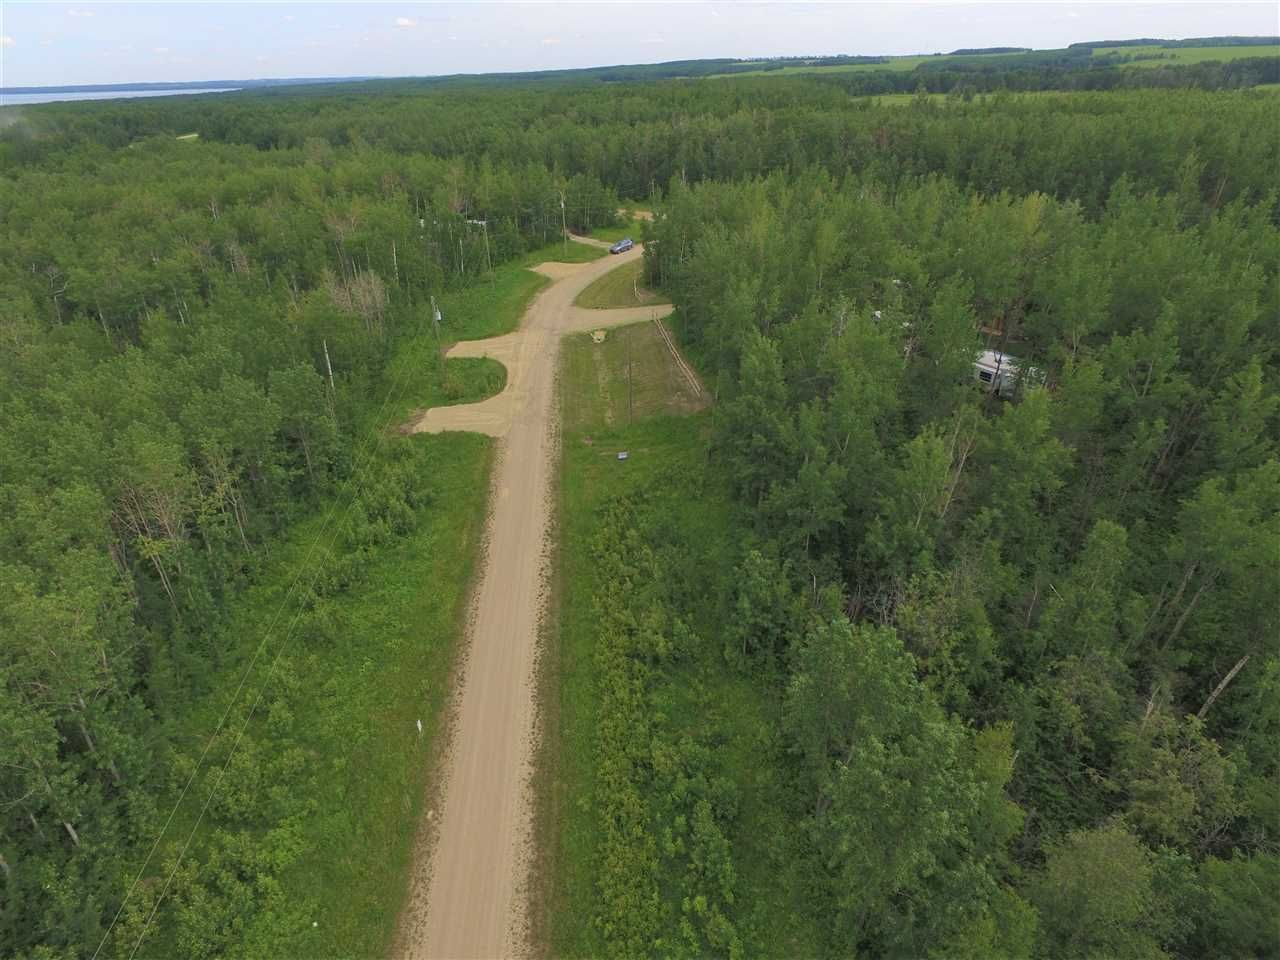 Photo 4: Photos: #11 13070 Twp Rd 464: Rural Wetaskiwin County Rural Land/Vacant Lot for sale : MLS®# E4195644